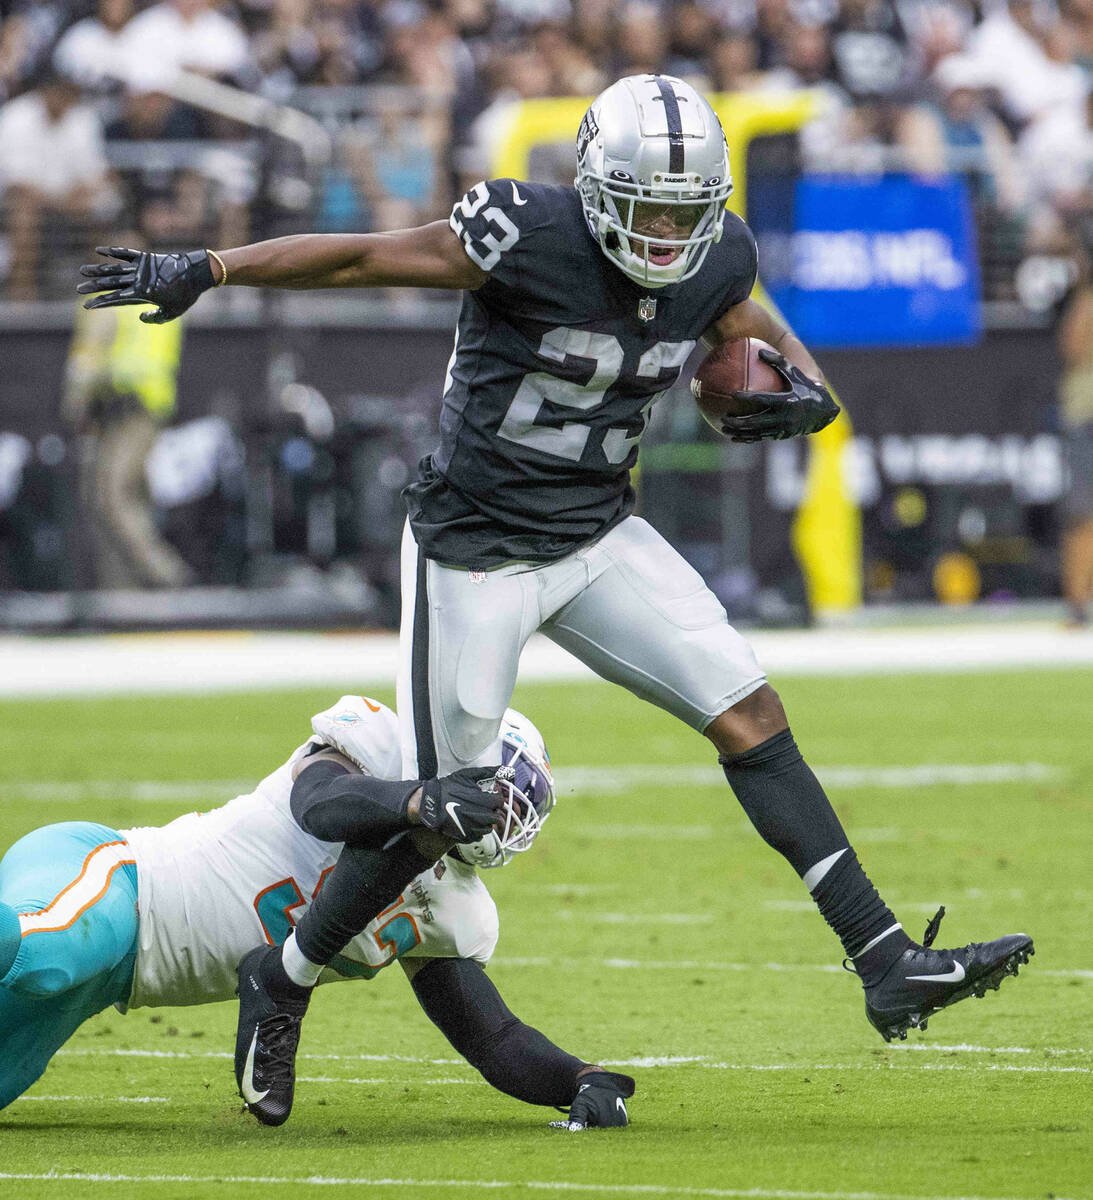 Las Vegas Raiders running back Kenyan Drake (23) looks to break a tackle by Miami Dolphins midd ...